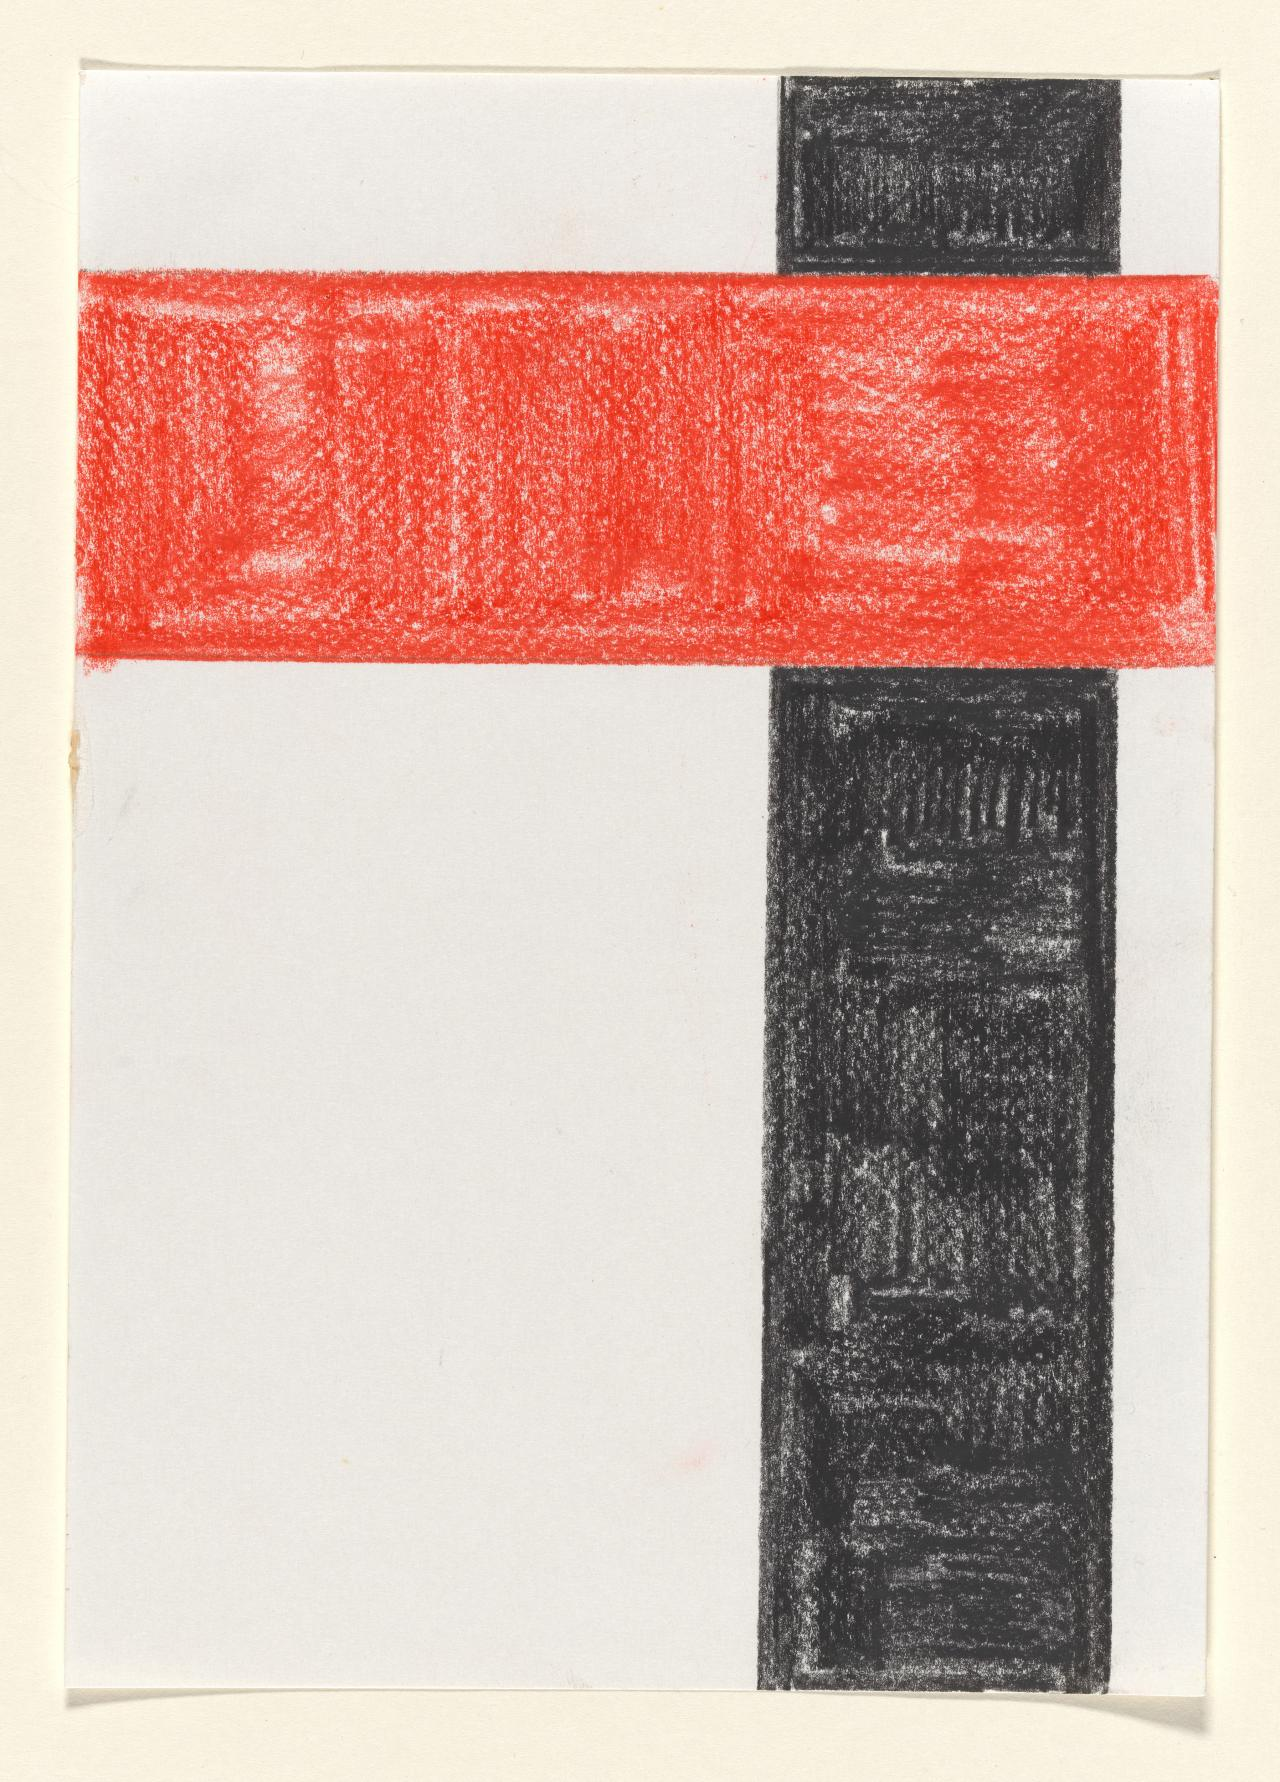 Untitled (Non-objective composition with red and black oblongs)